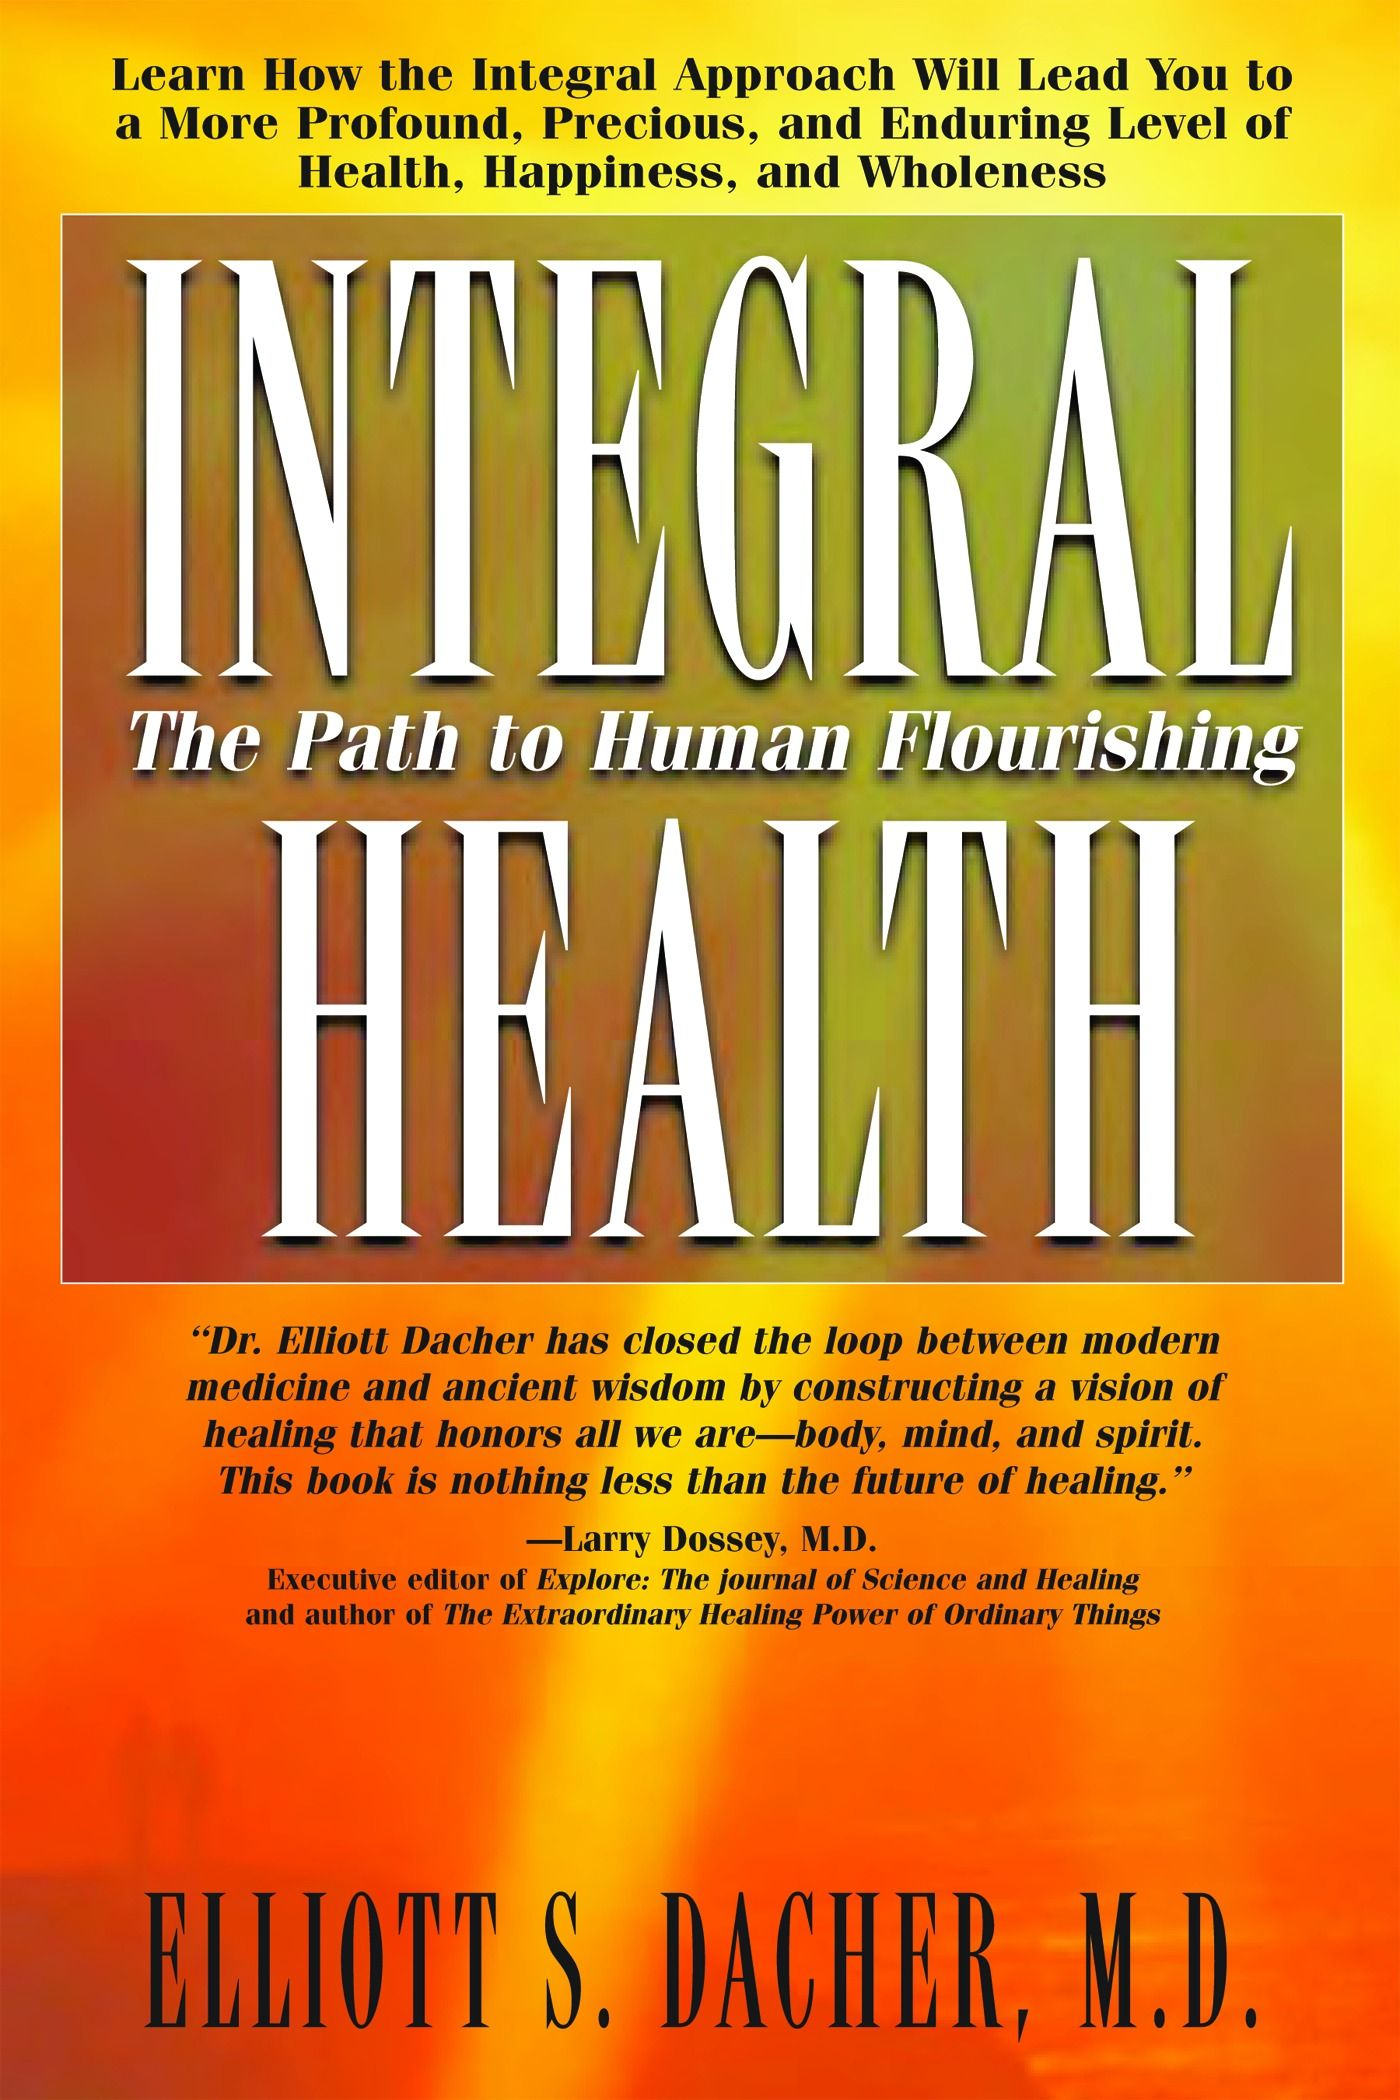 Integral Health: The Path To Human Flourishing